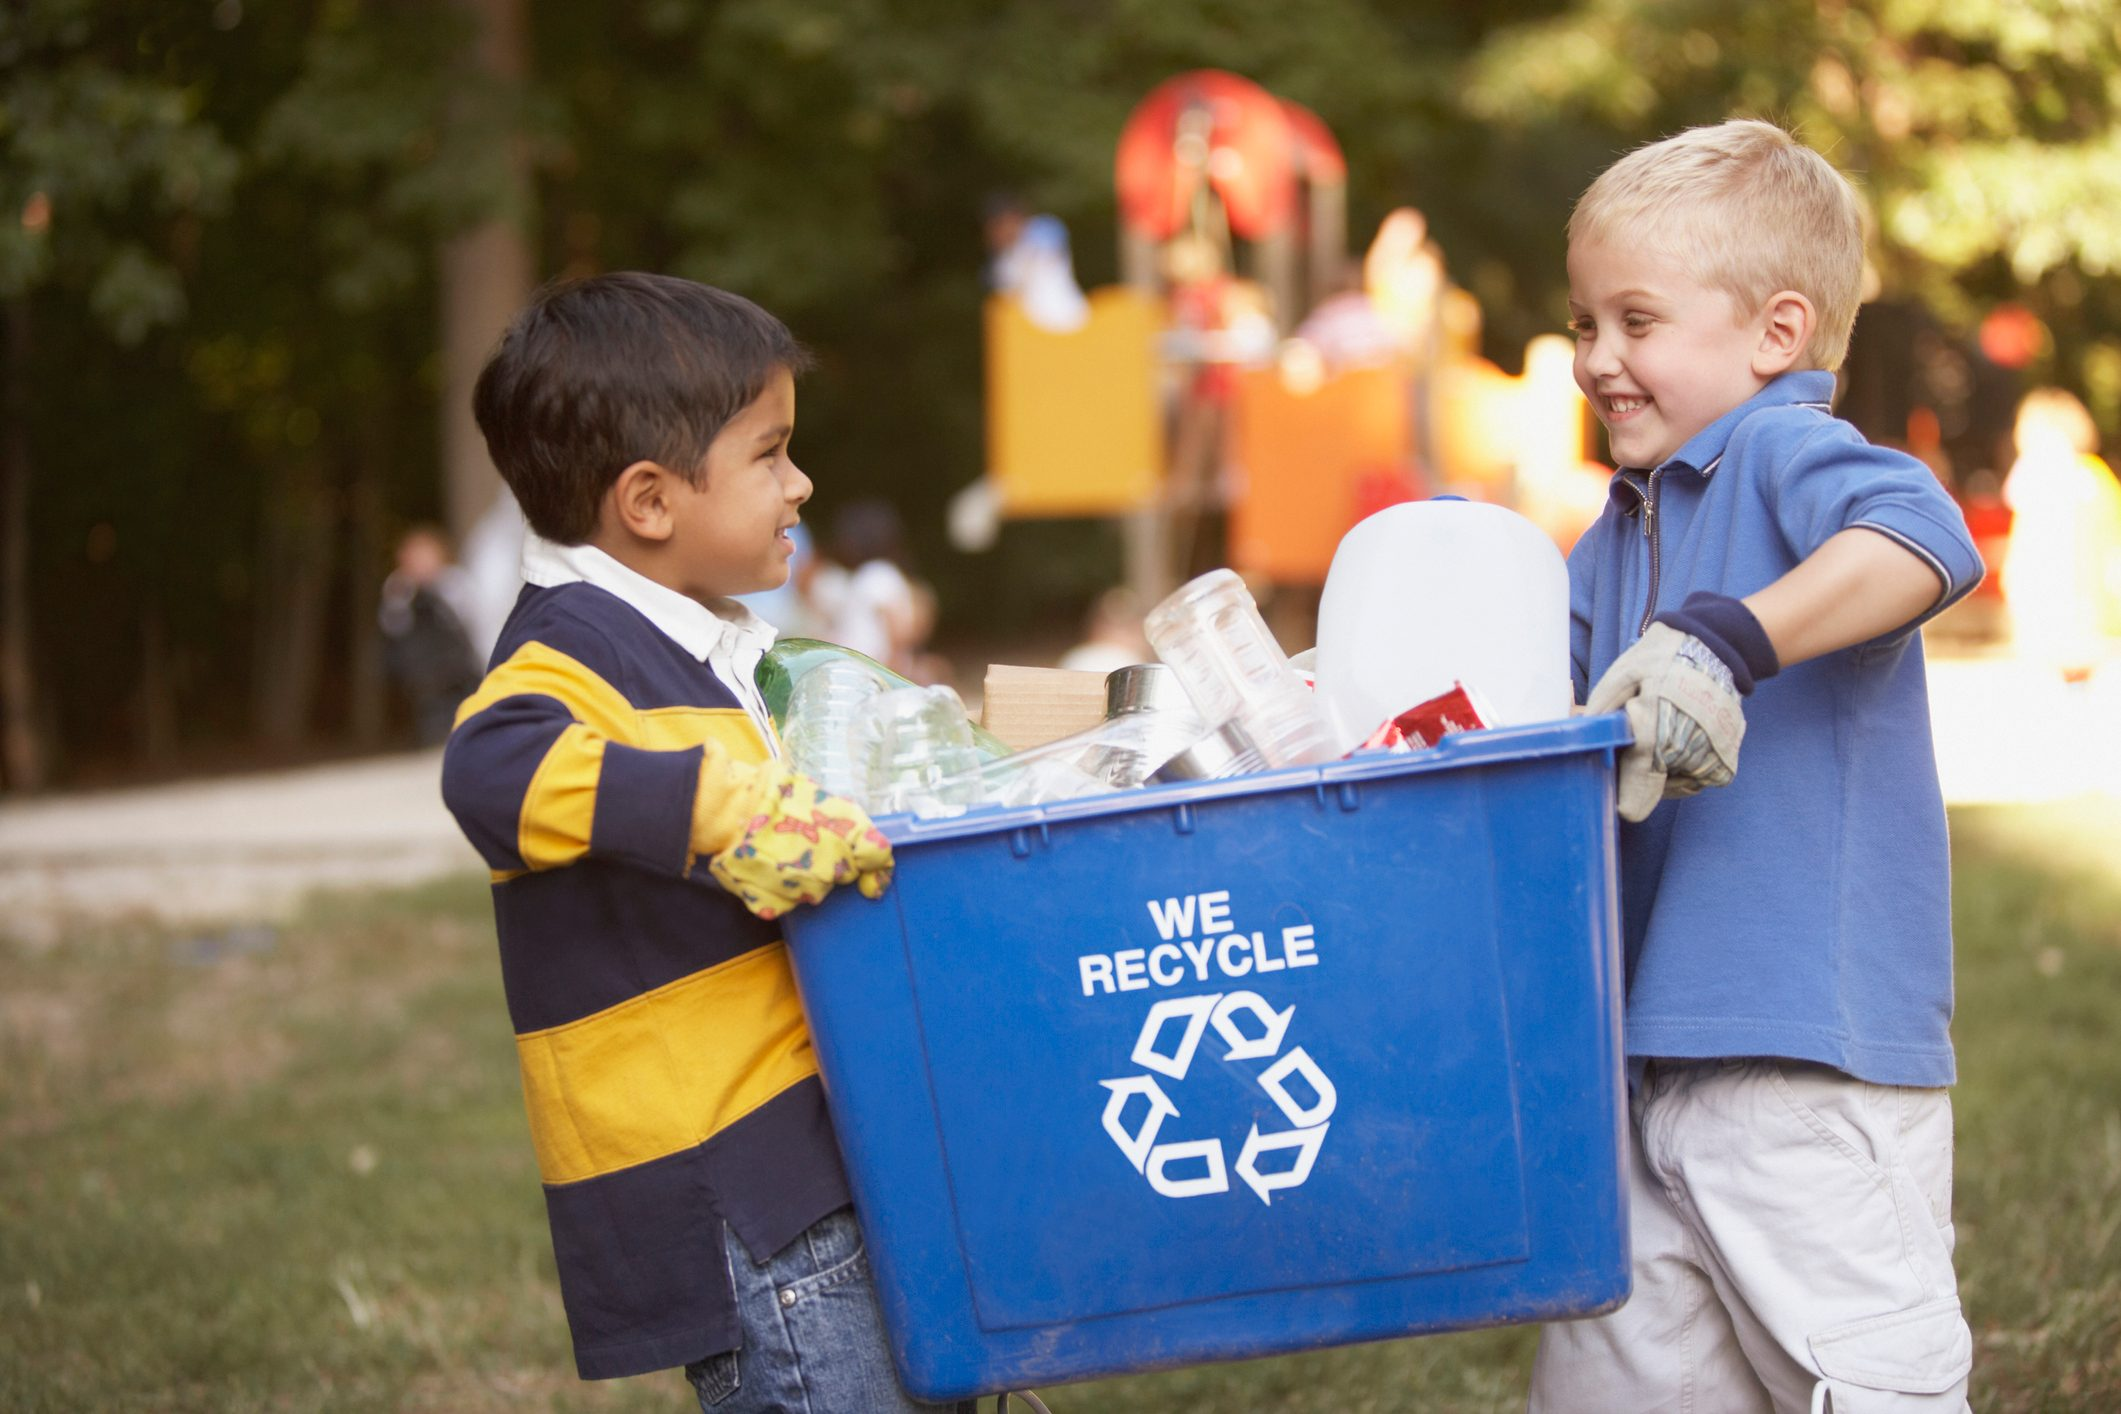 two little boys carrying a blue recycling bin